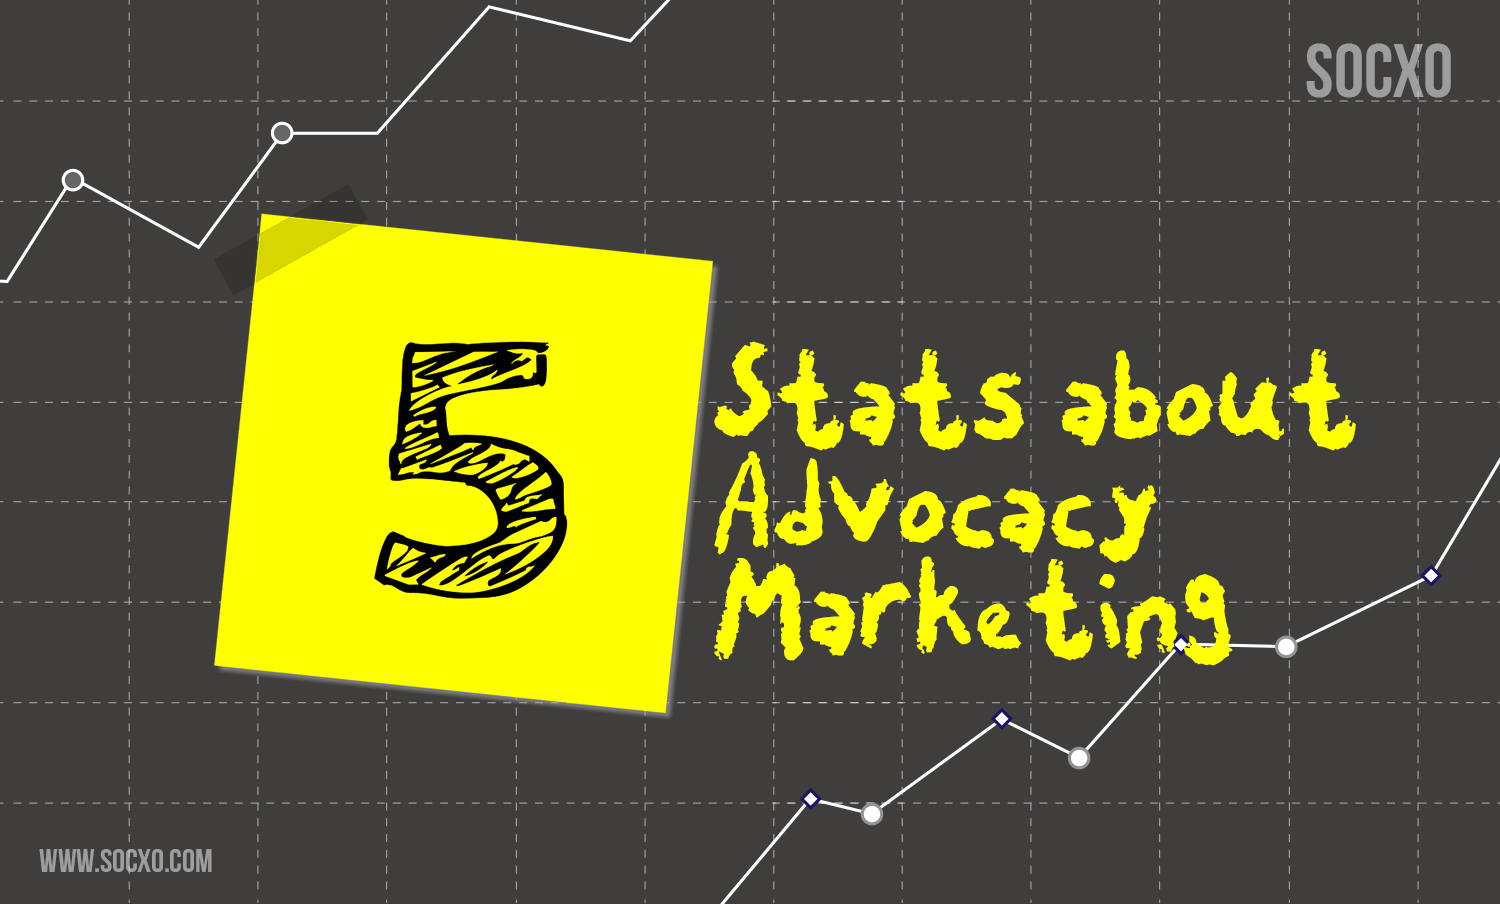 5 stats about advocacy marketing